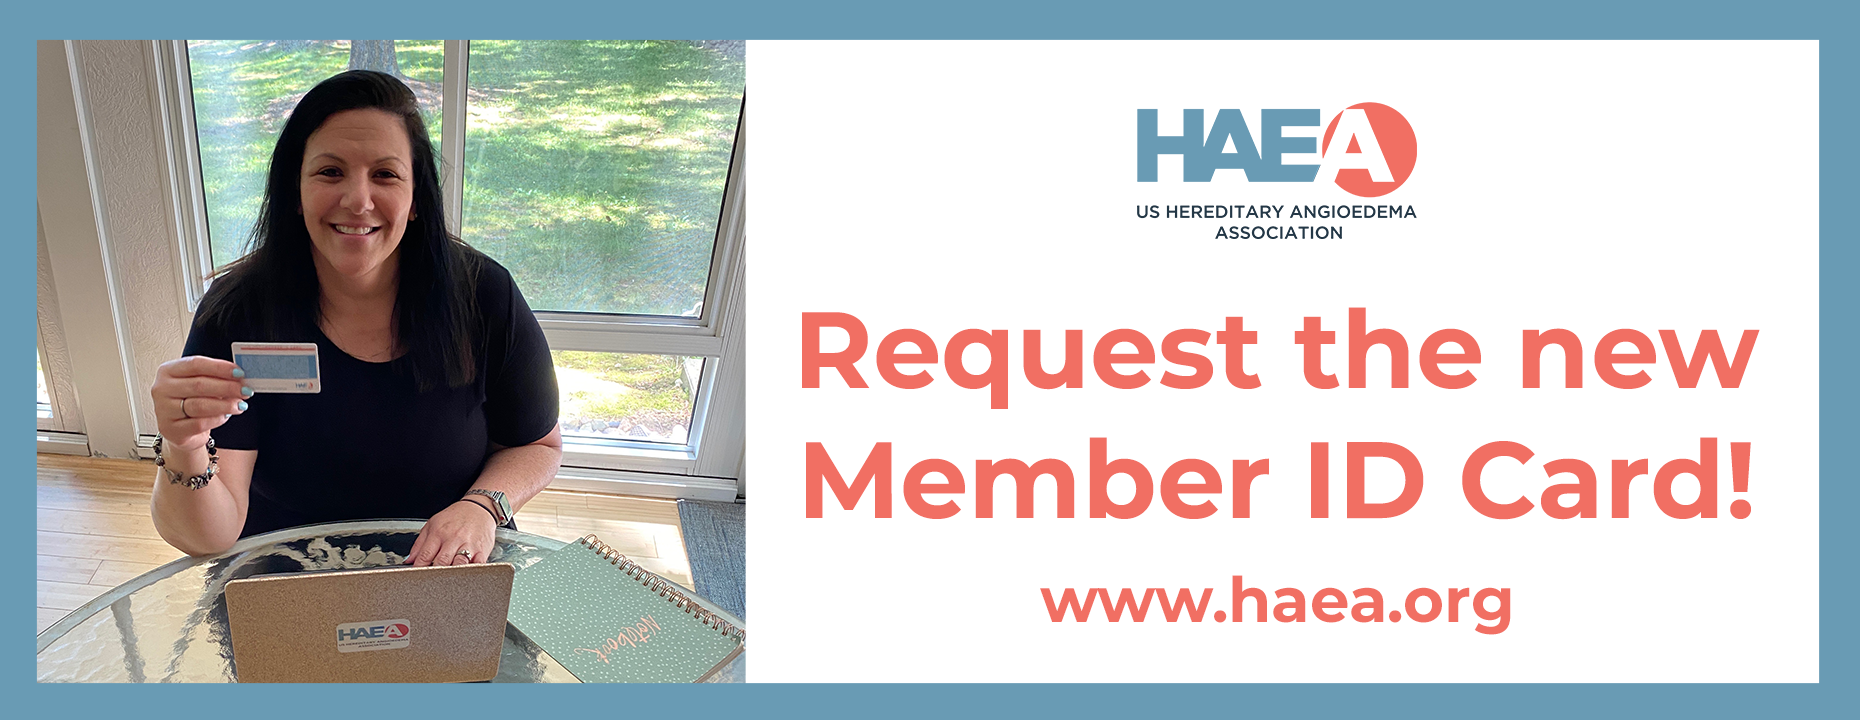 Order your FREE US HAEA Member ID Card